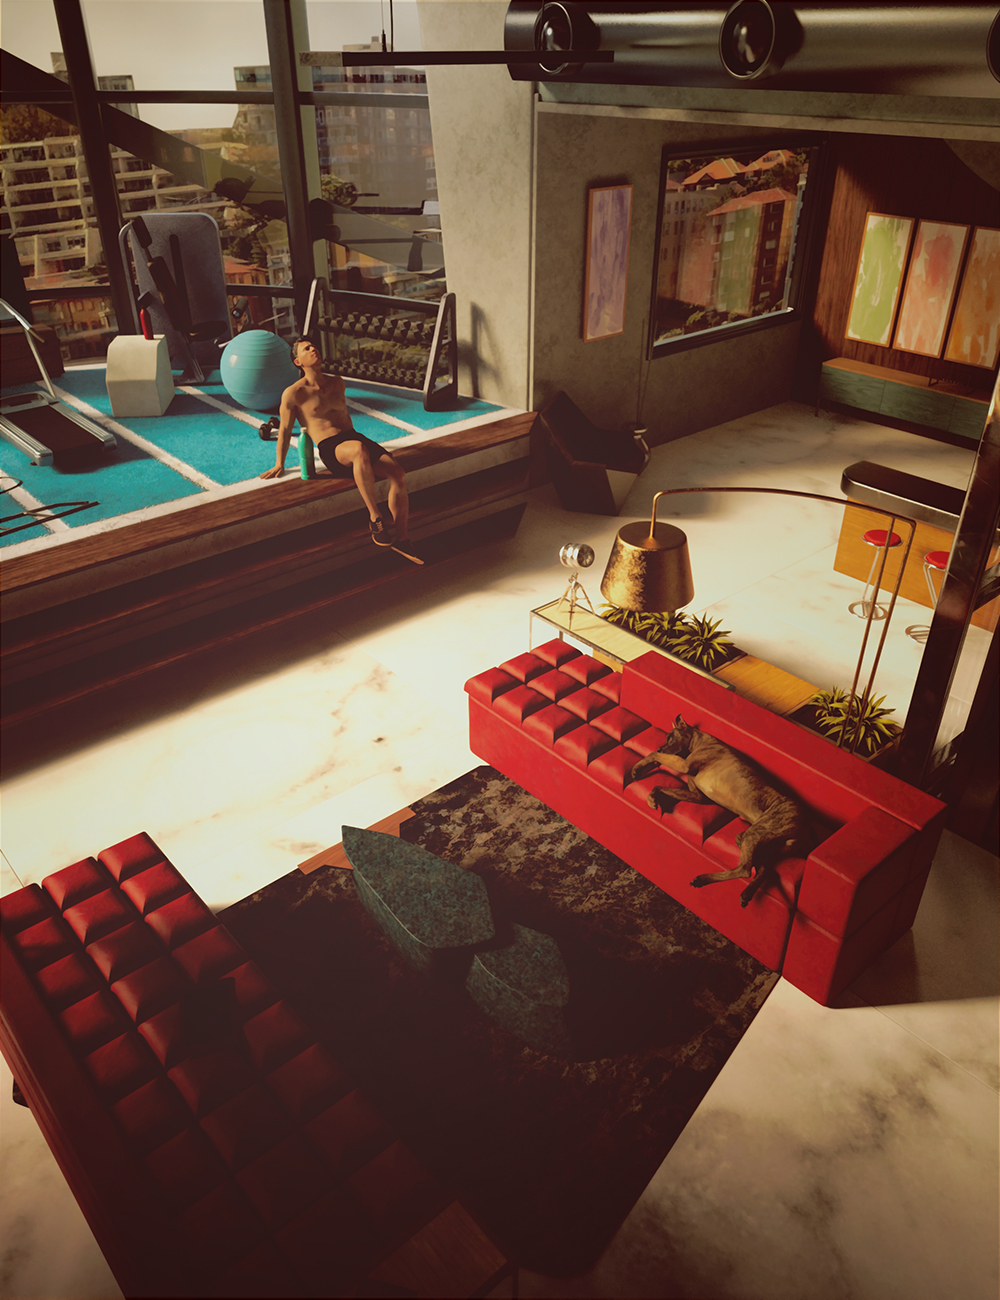 Highrise Apartment by: Feng, 3D Models by Daz 3D